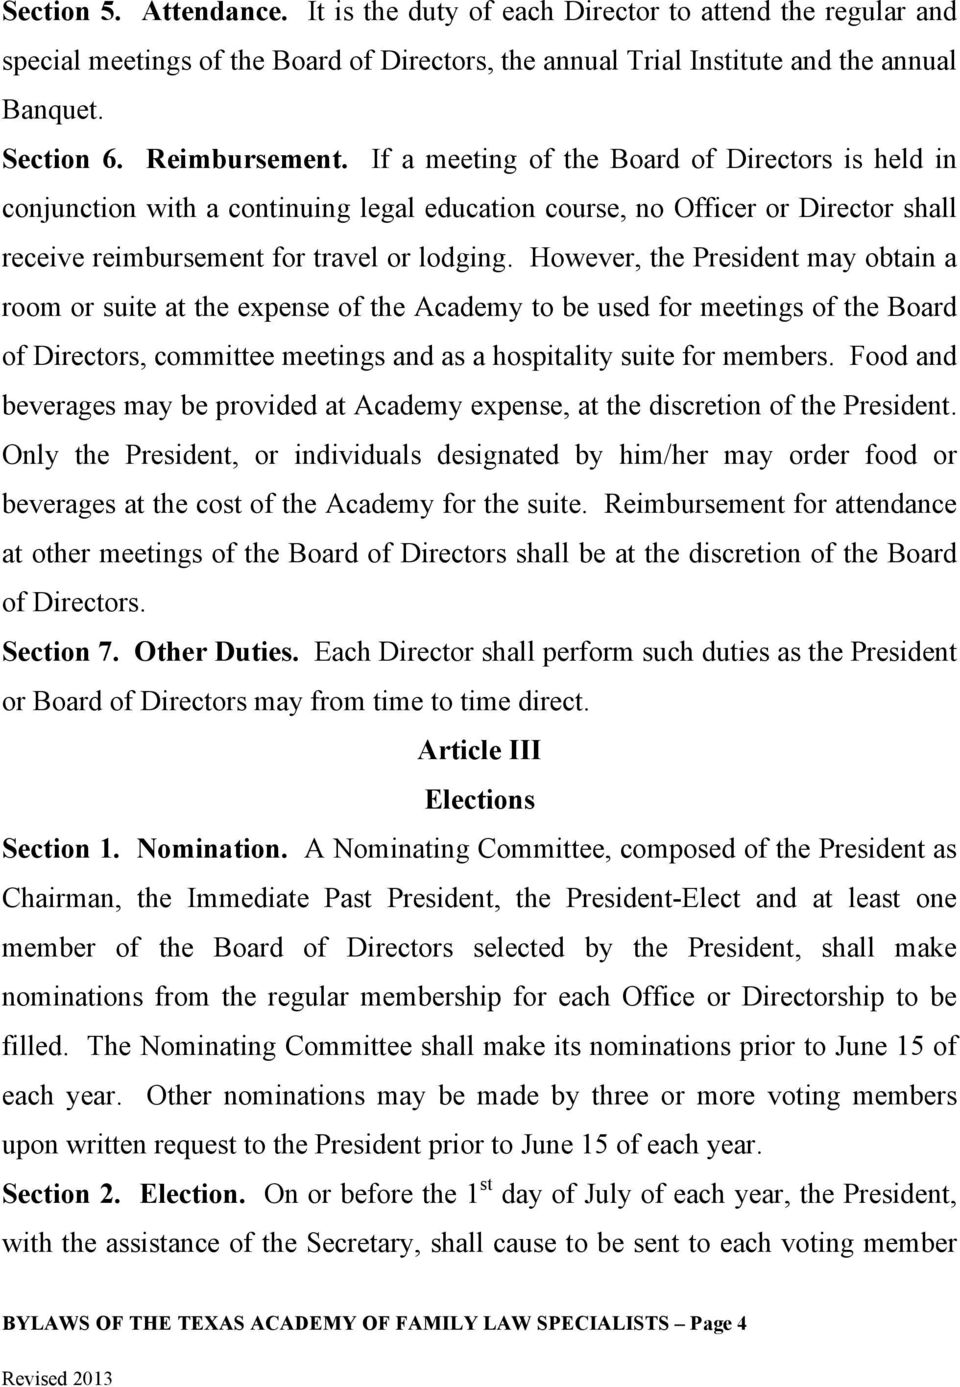 However, the President may obtain a room or suite at the expense of the Academy to be used for meetings of the Board of Directors, committee meetings and as a hospitality suite for members.